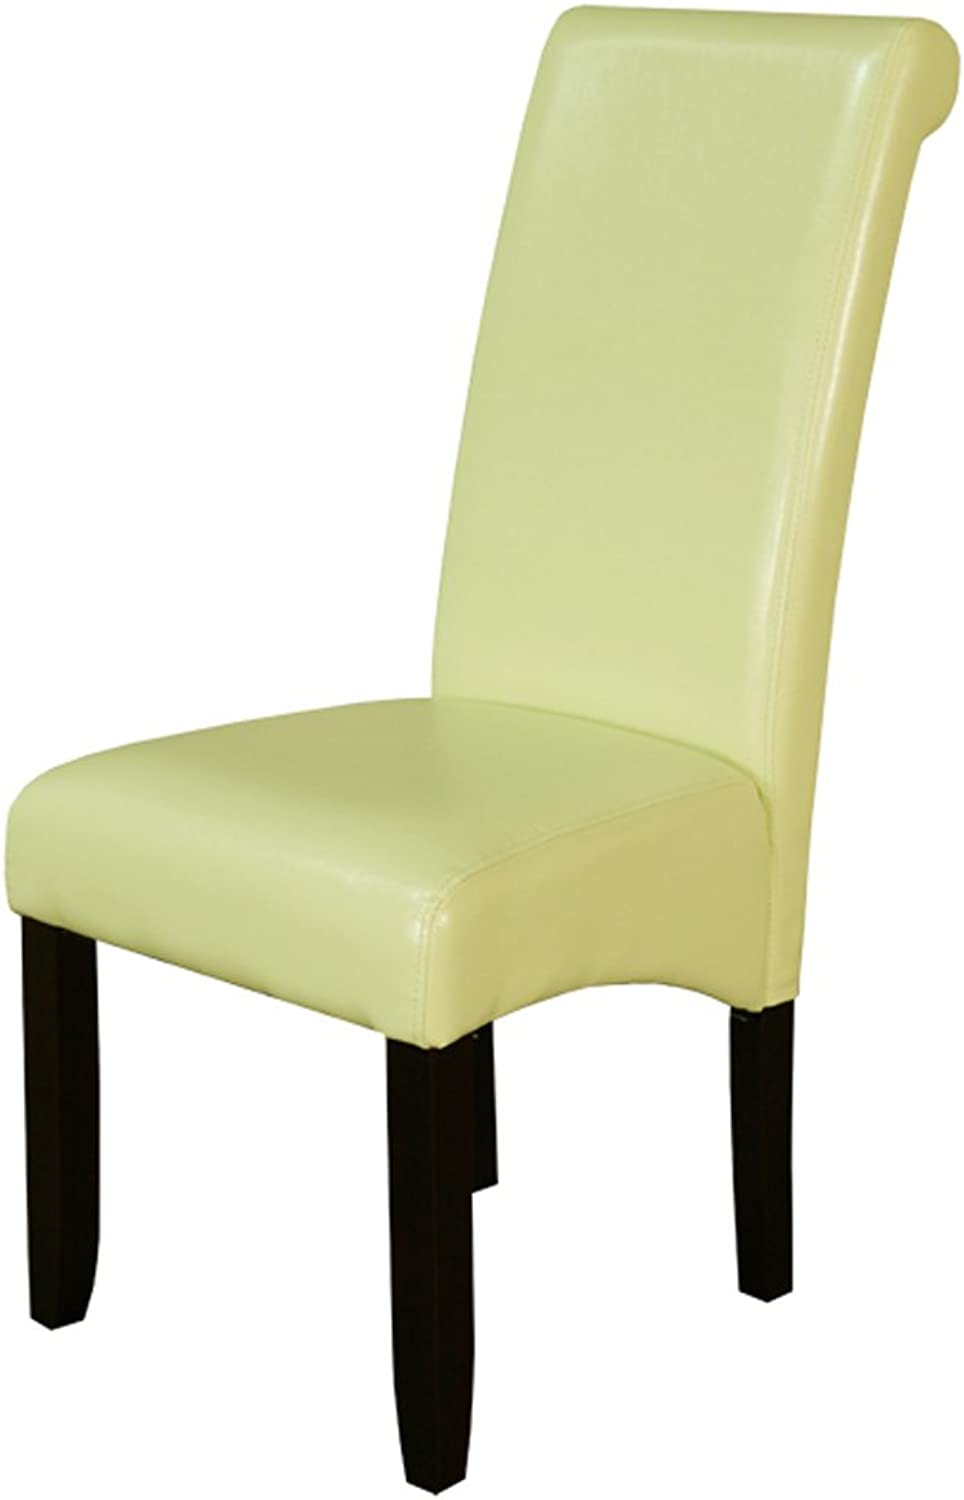 Monsoon Pacific Milan Faux Leather Dining Chairs, Wax Green, Set of 2